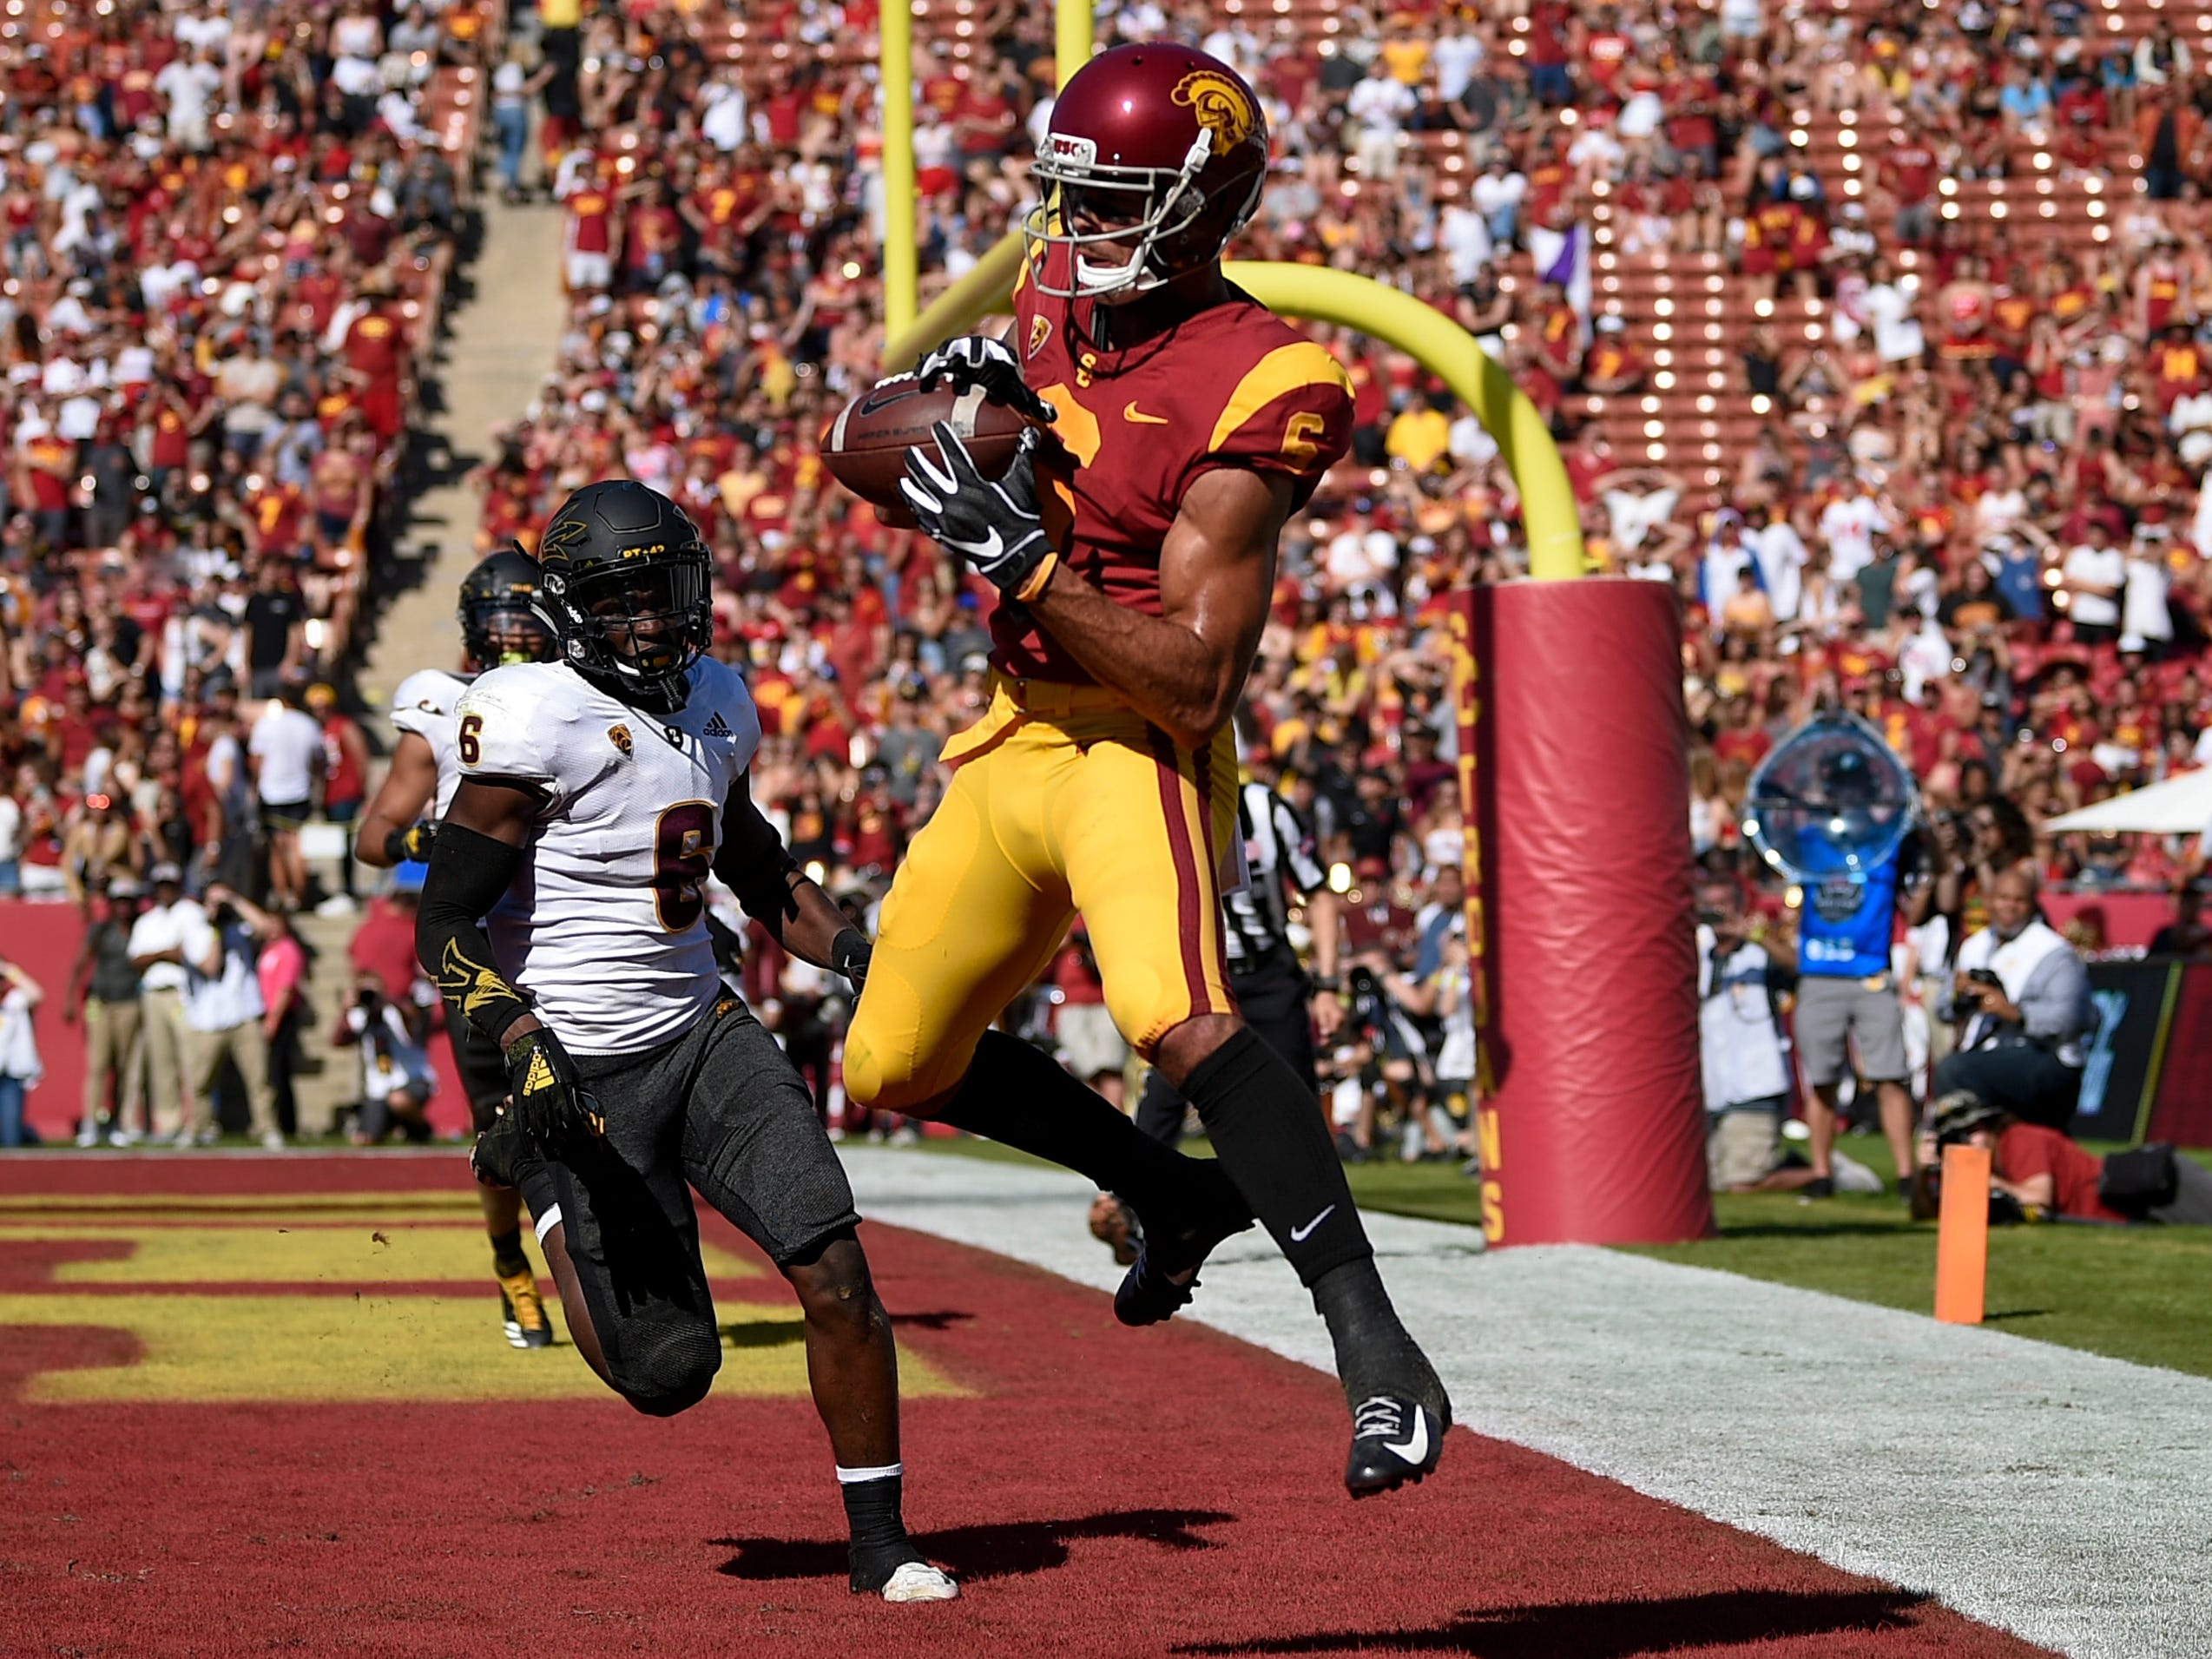 Oct 27, 2018; Los Angeles, CA, USA; Southern California Trojans wide receiver Michael Pittman Jr. (6) catches a pass for a touchdown while Arizona State Sun Devils defensive back Evan Fields (6) defends during the first half at Los Angeles Memorial Coliseum. Mandatory Credit: Kelvin Kuo-USA TODAY Sports